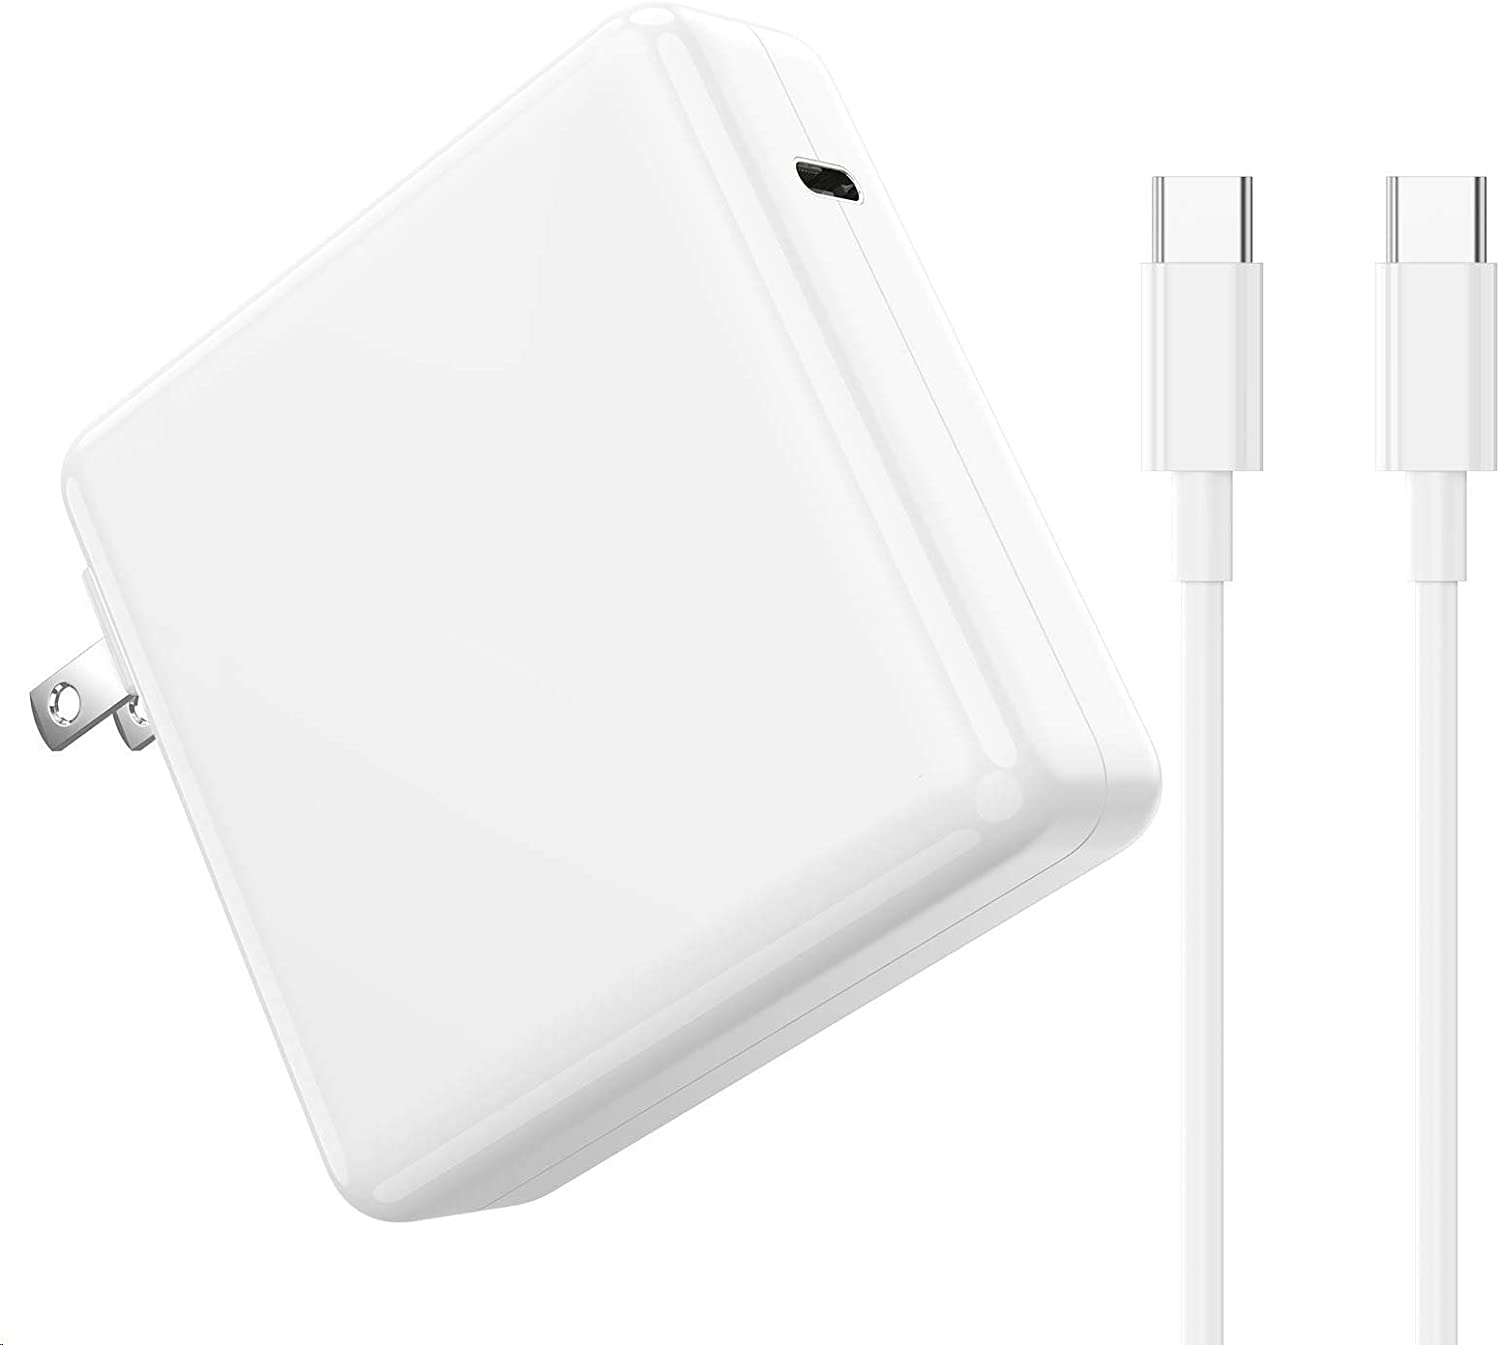 96W Mac Book Pro Charger USB C, USB C Power Adapter for Mac Book 2015-2017, Mac Book Air 2018, Mac Book Pro 16 15 13 inch 2016-2019 and Any Other Laptops or Smart Phones with USB C Port